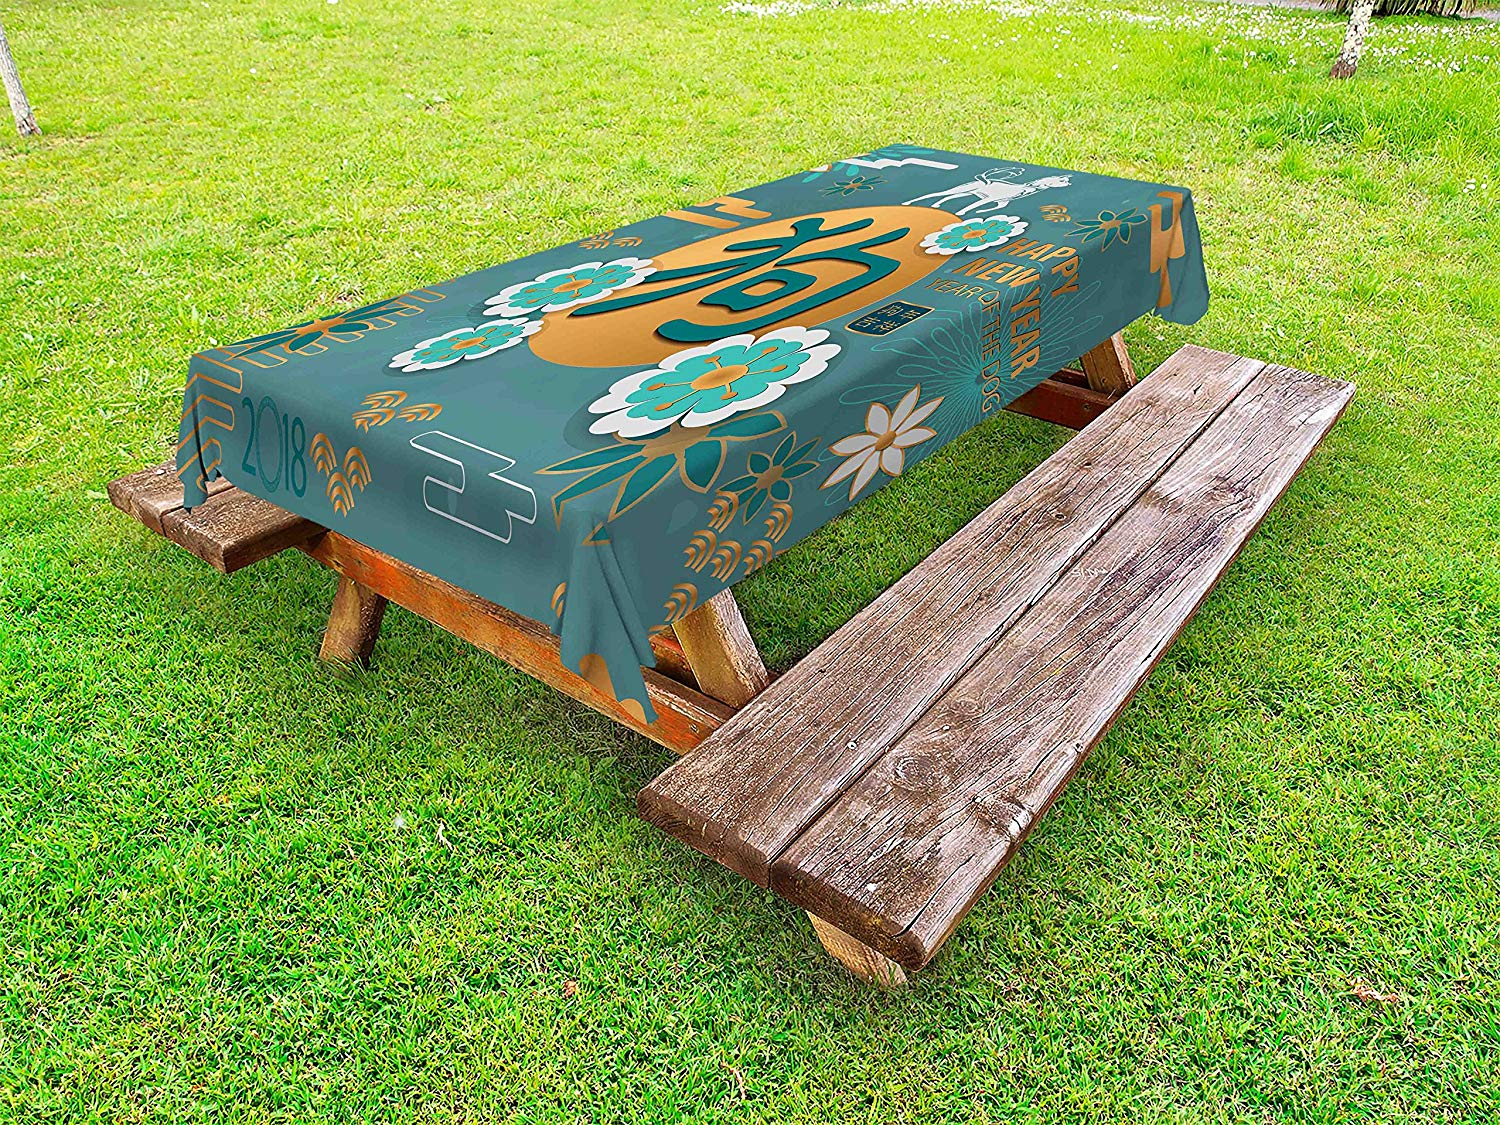 Ambesonne Year of the Dog Outdoor Tablecloth, Lunar Year Illustration with Flowers and Circles Chinese Culture Elements, Decorative Washable Picnic Table Cloth, 58 X 84 Inches, Multicolor